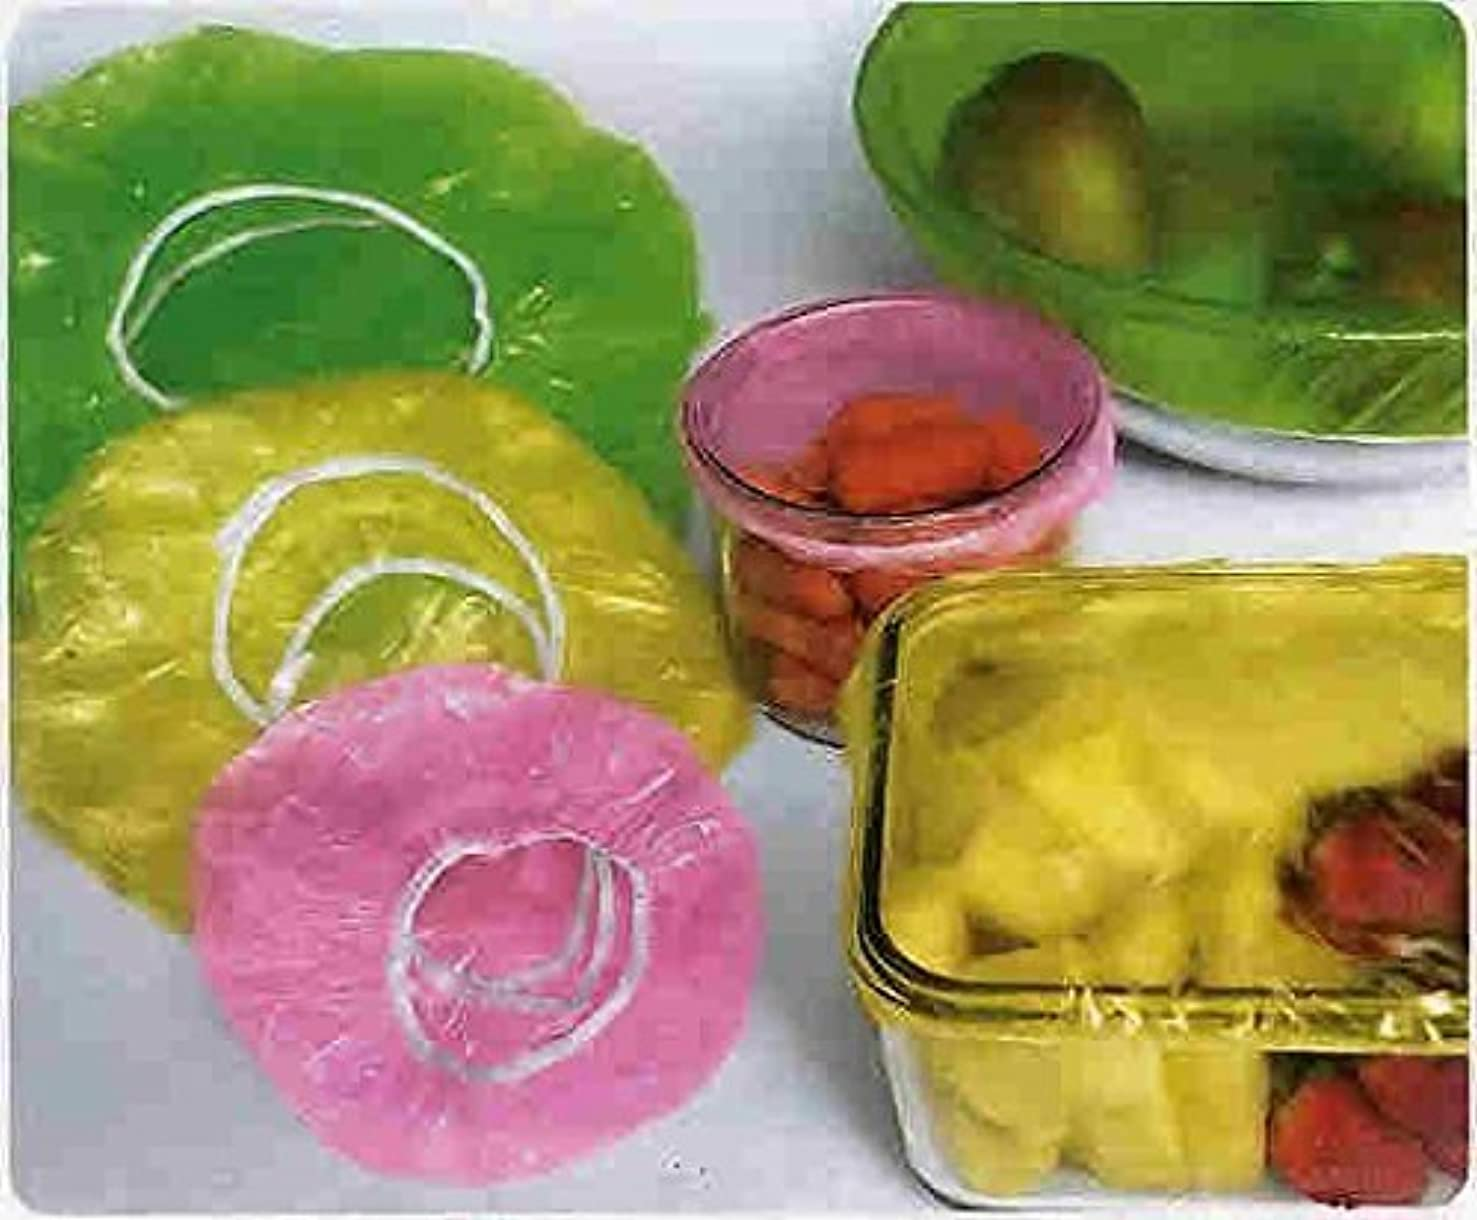 REUSABLE MULTICOLORED ELASTIC FOOD COVERS - 3 SIZES (SET OF 48)